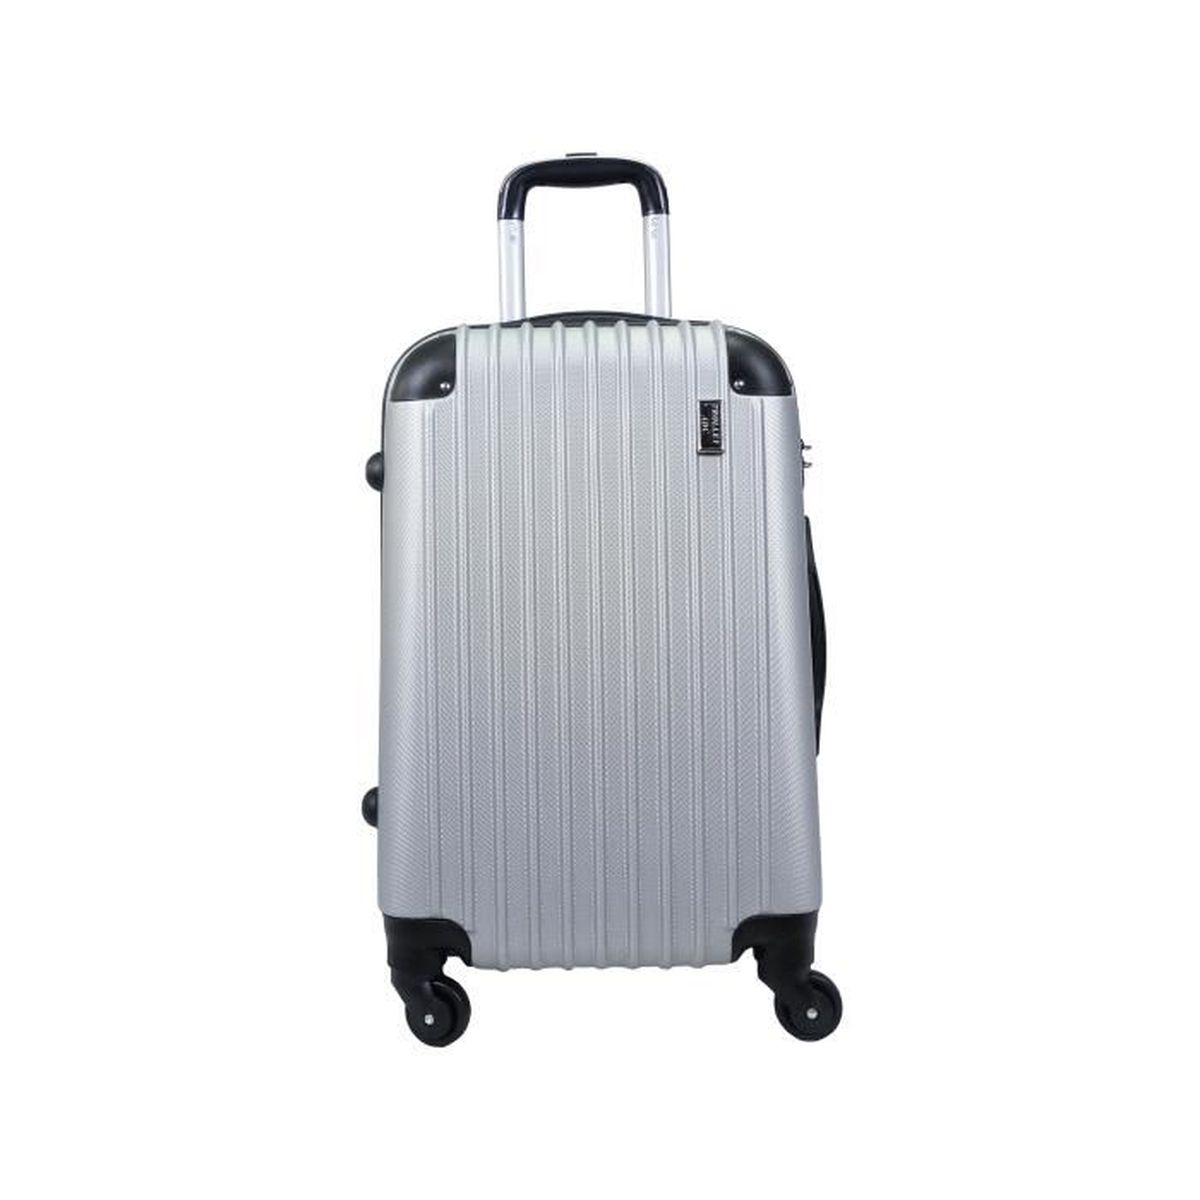 """VALISE - BAGAGE Valise Cabine trolley taille 55cm - Trolley ADC """"R"""